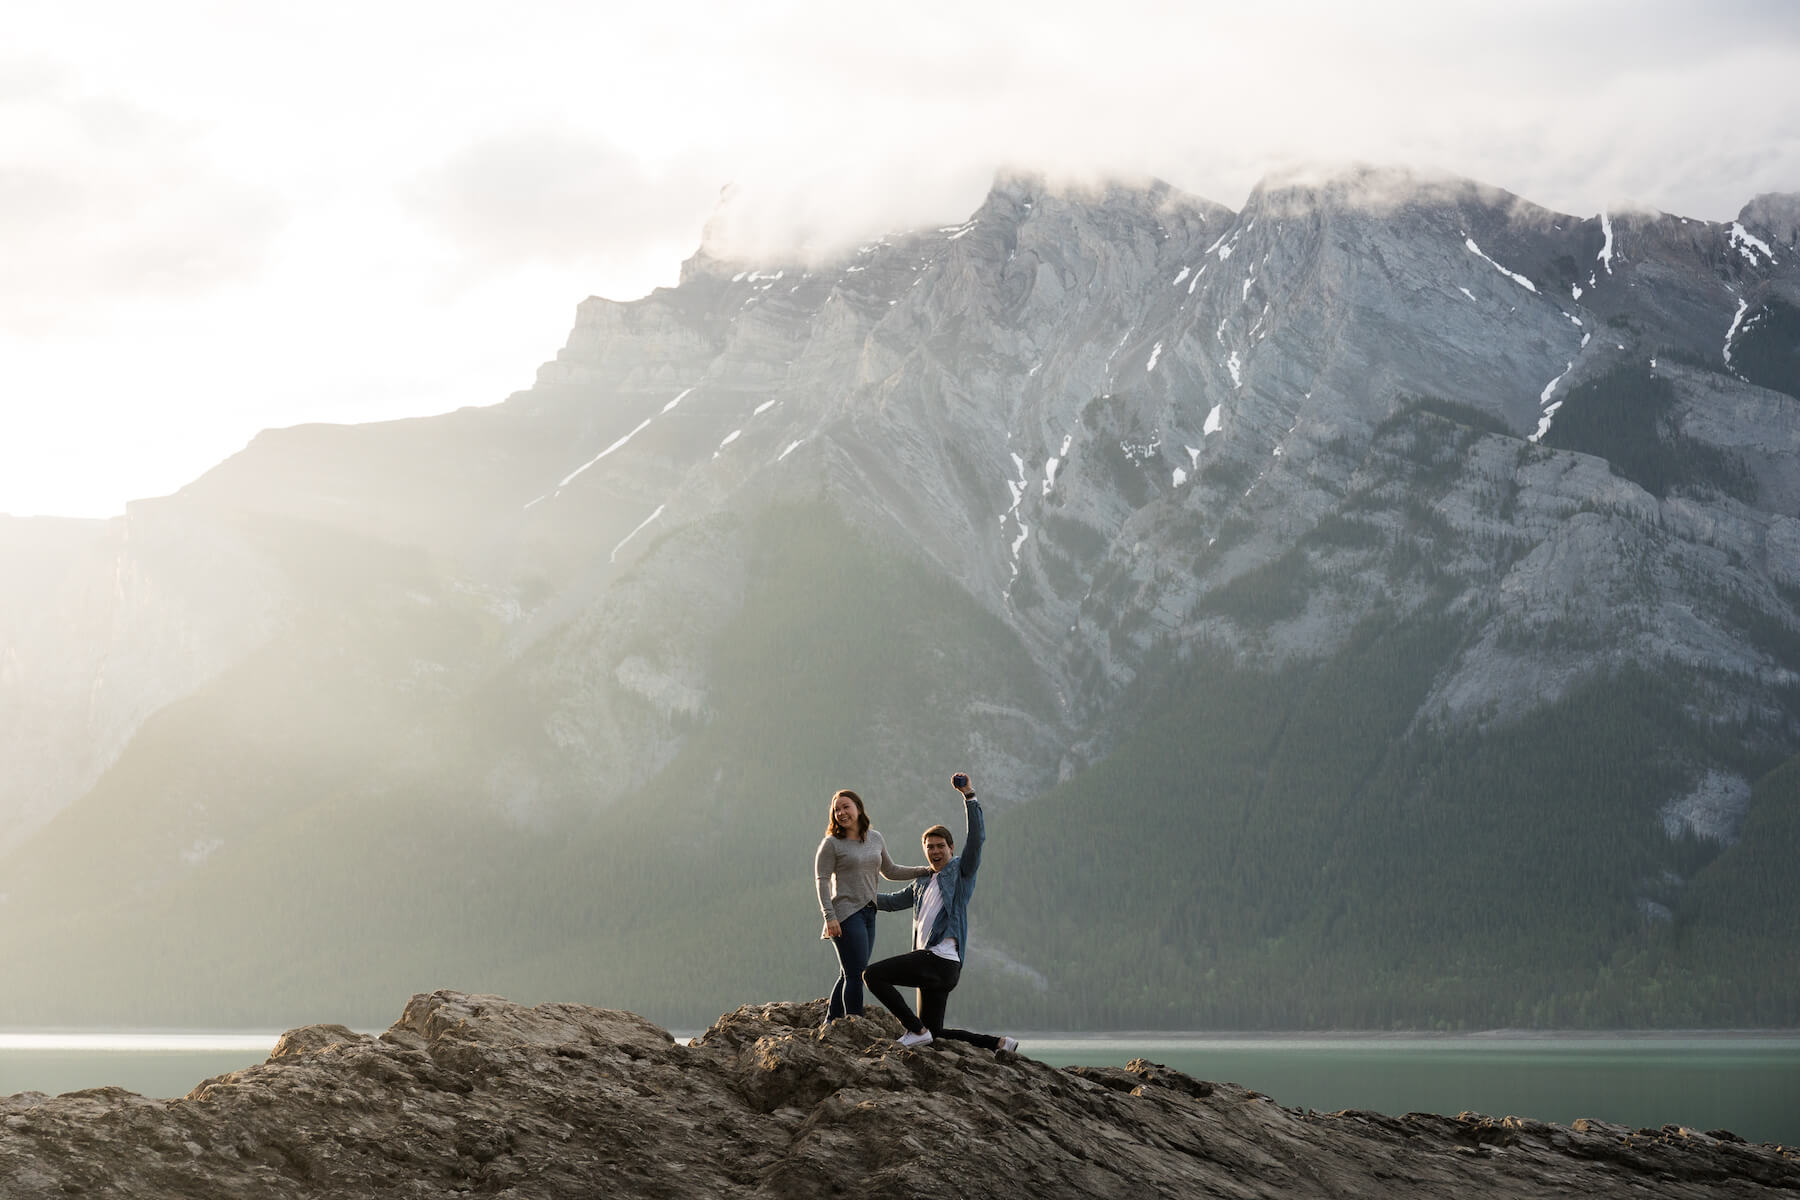 a man is proposing to the woman and he is raising his arms in the air in Banff, Canada